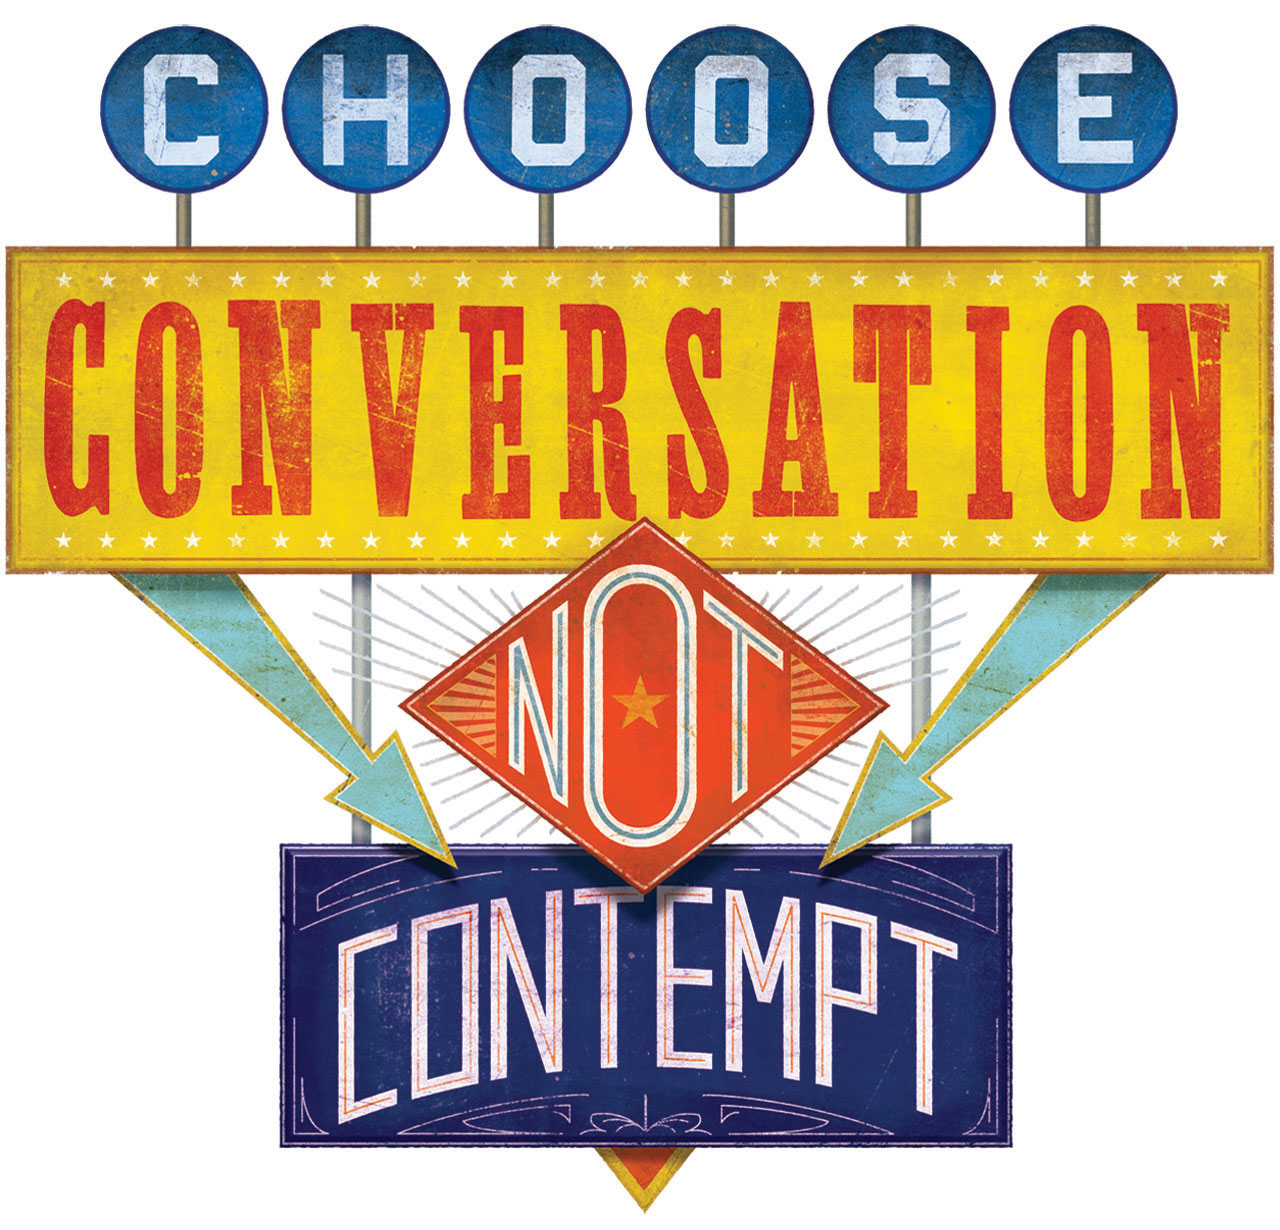 Illustrated text of 'choose conversation over contempt'